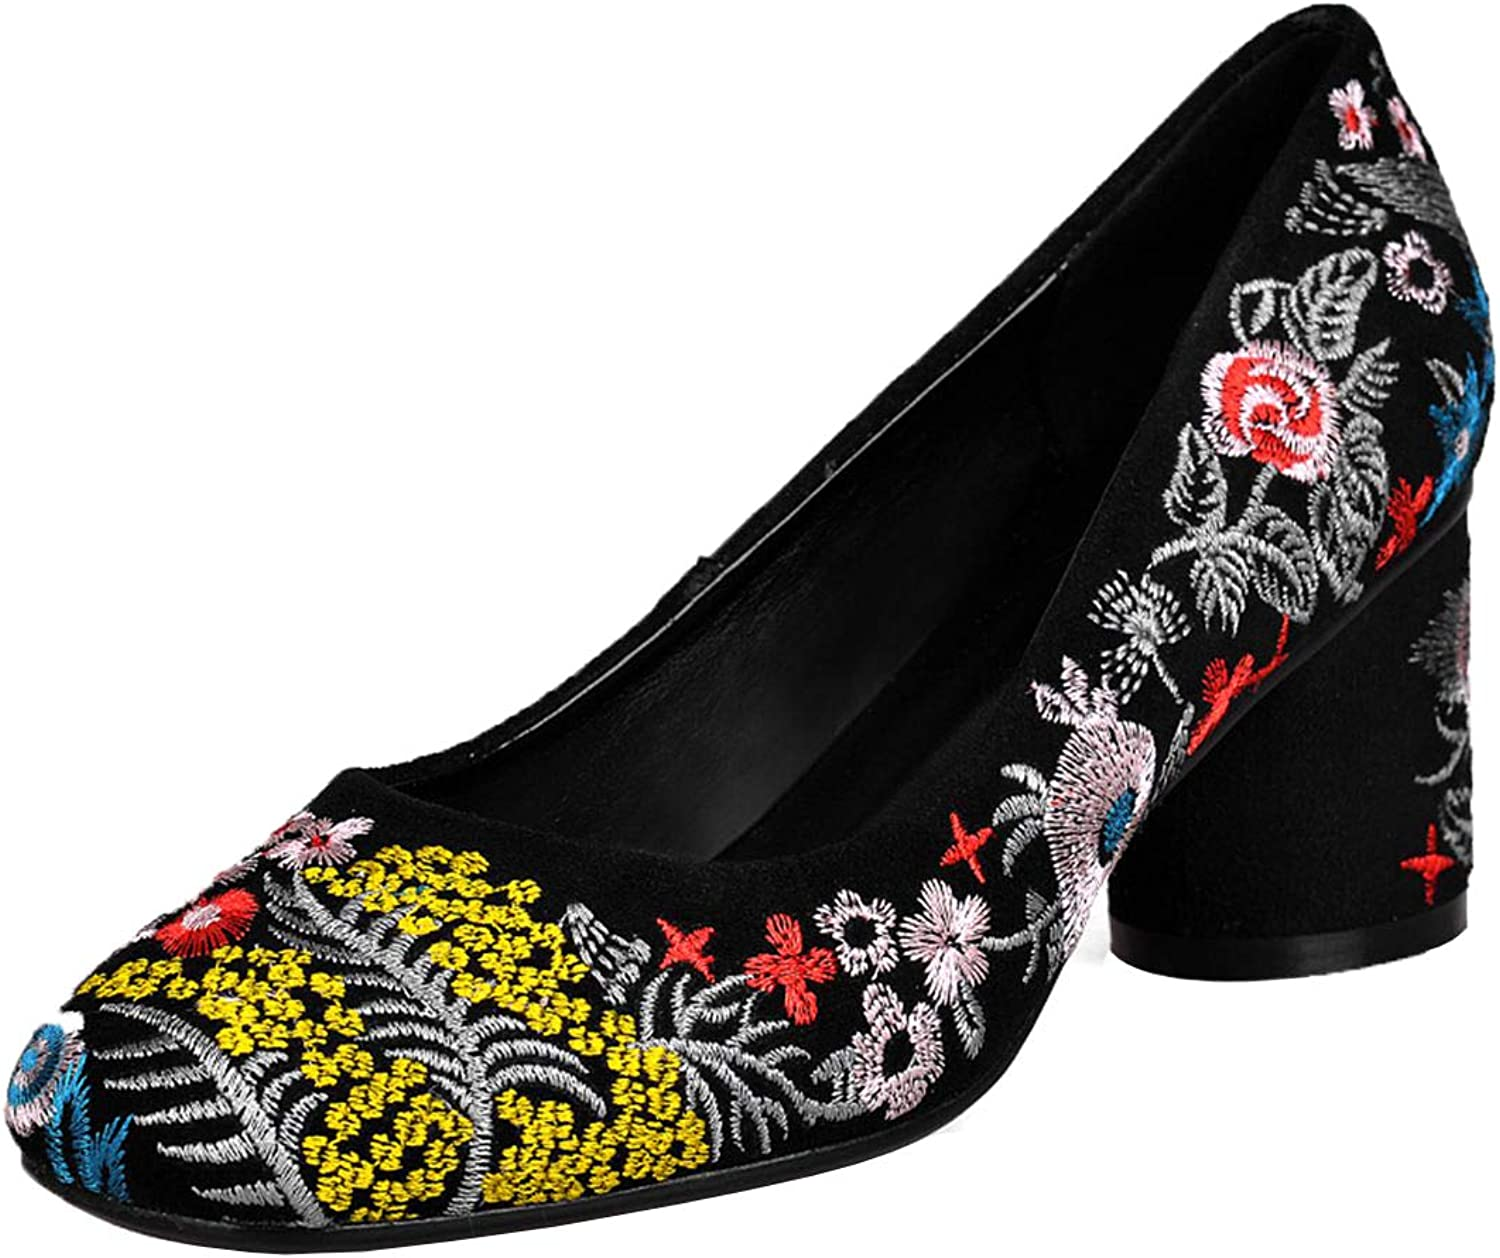 Vitalo Womens Embroidered High Block Heel Pumps Closed Toe Classic Court shoes